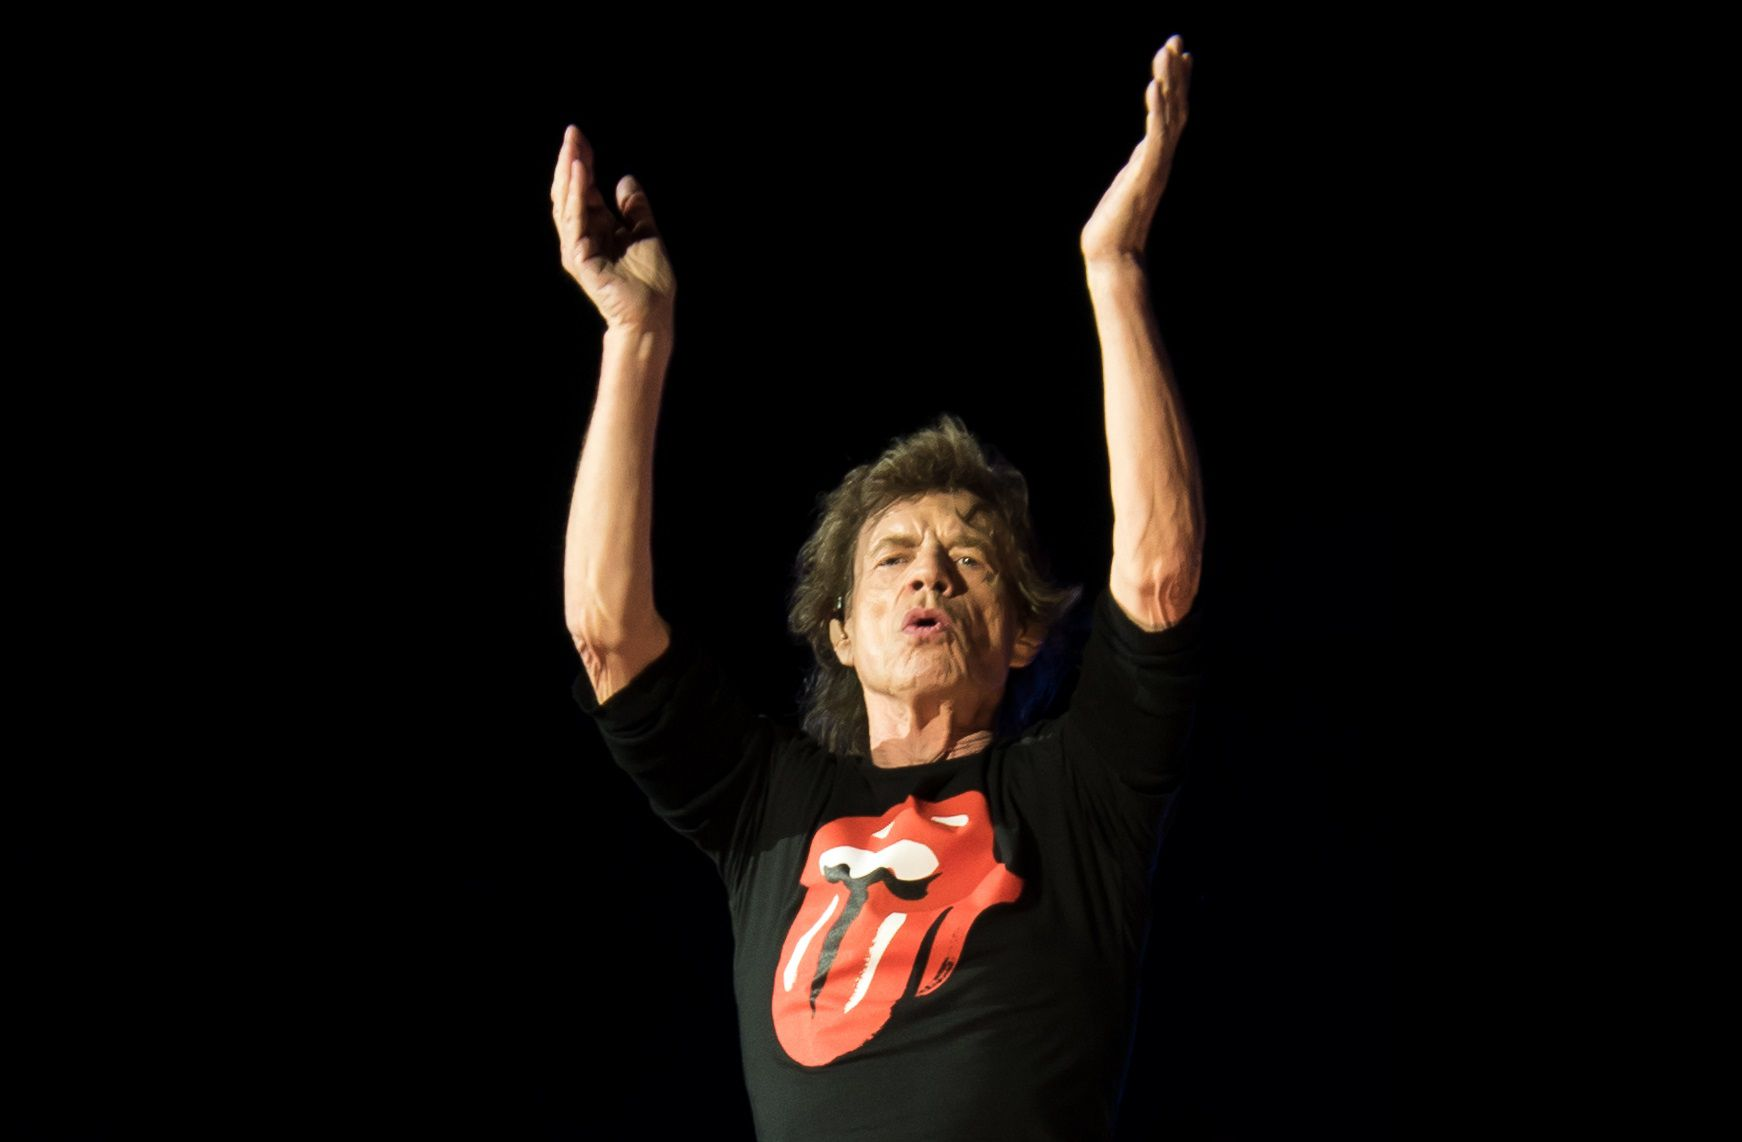 Mick Jagger performing on a darkened stage.